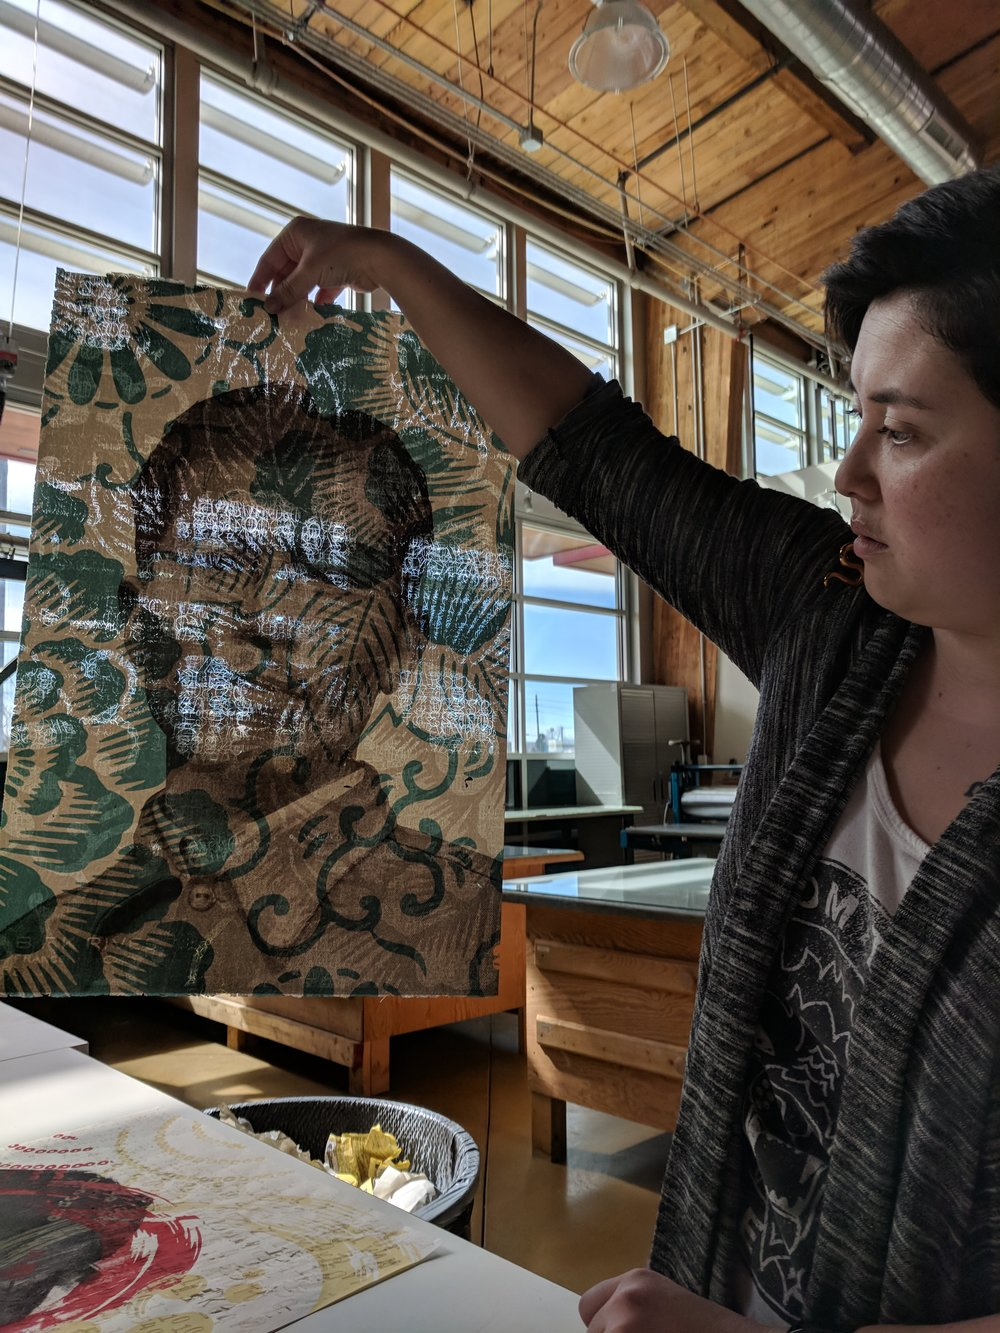 Fukami showing her newest iteration of laser cut prints. Image by Drew Austin